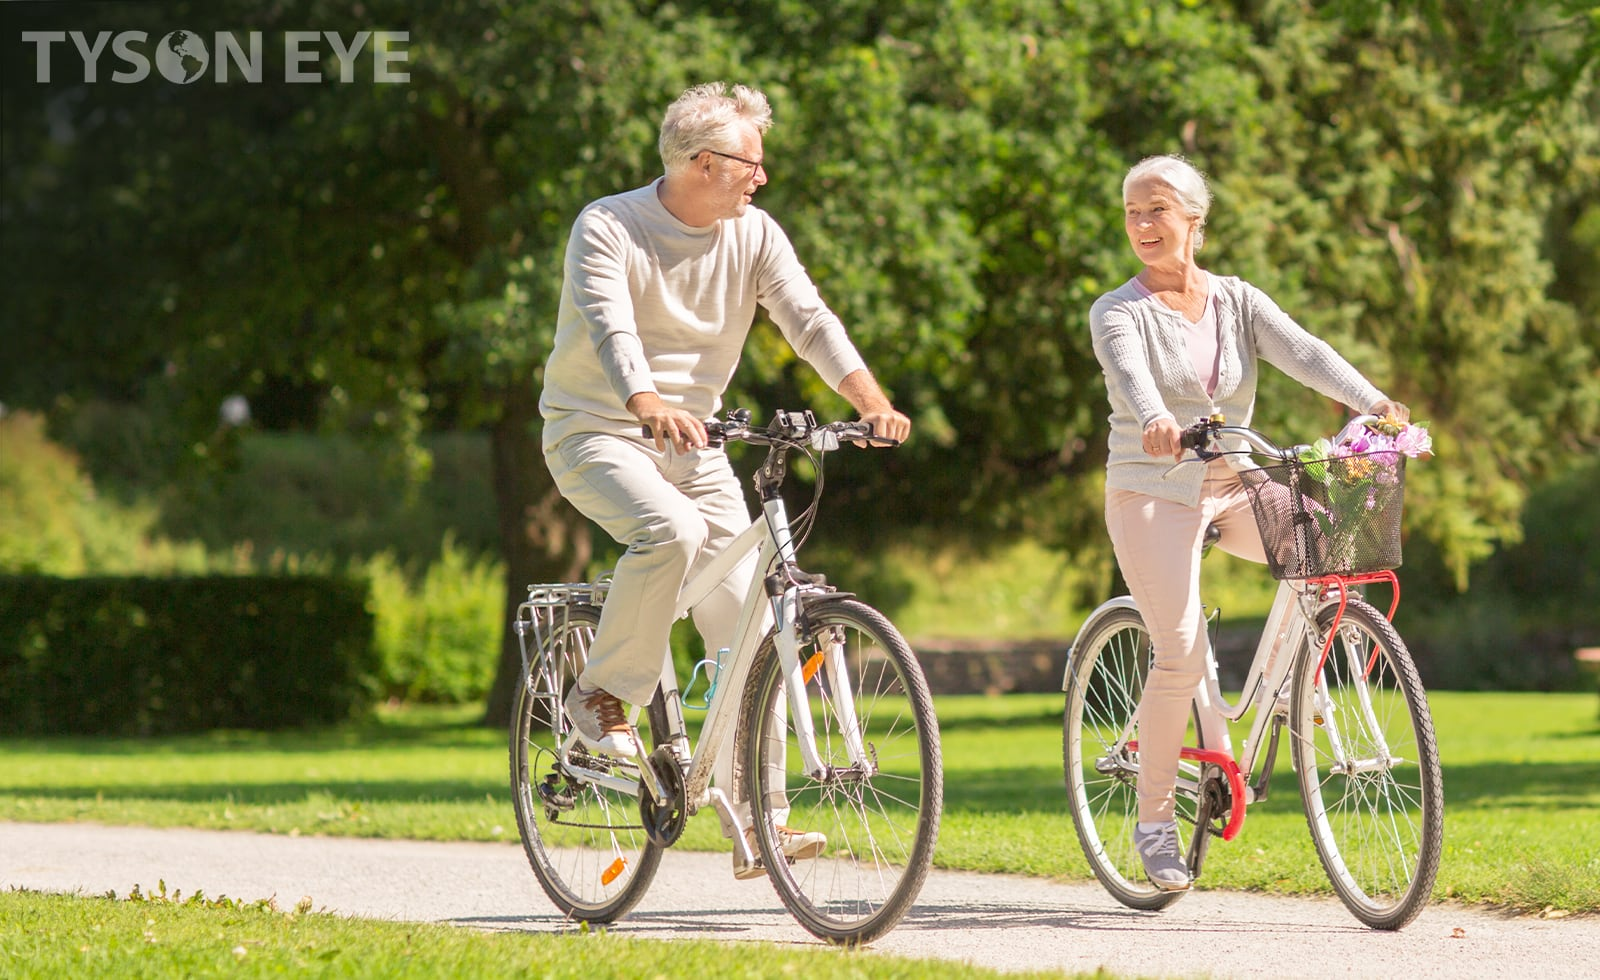 An elderly couple riding bicycles in a park